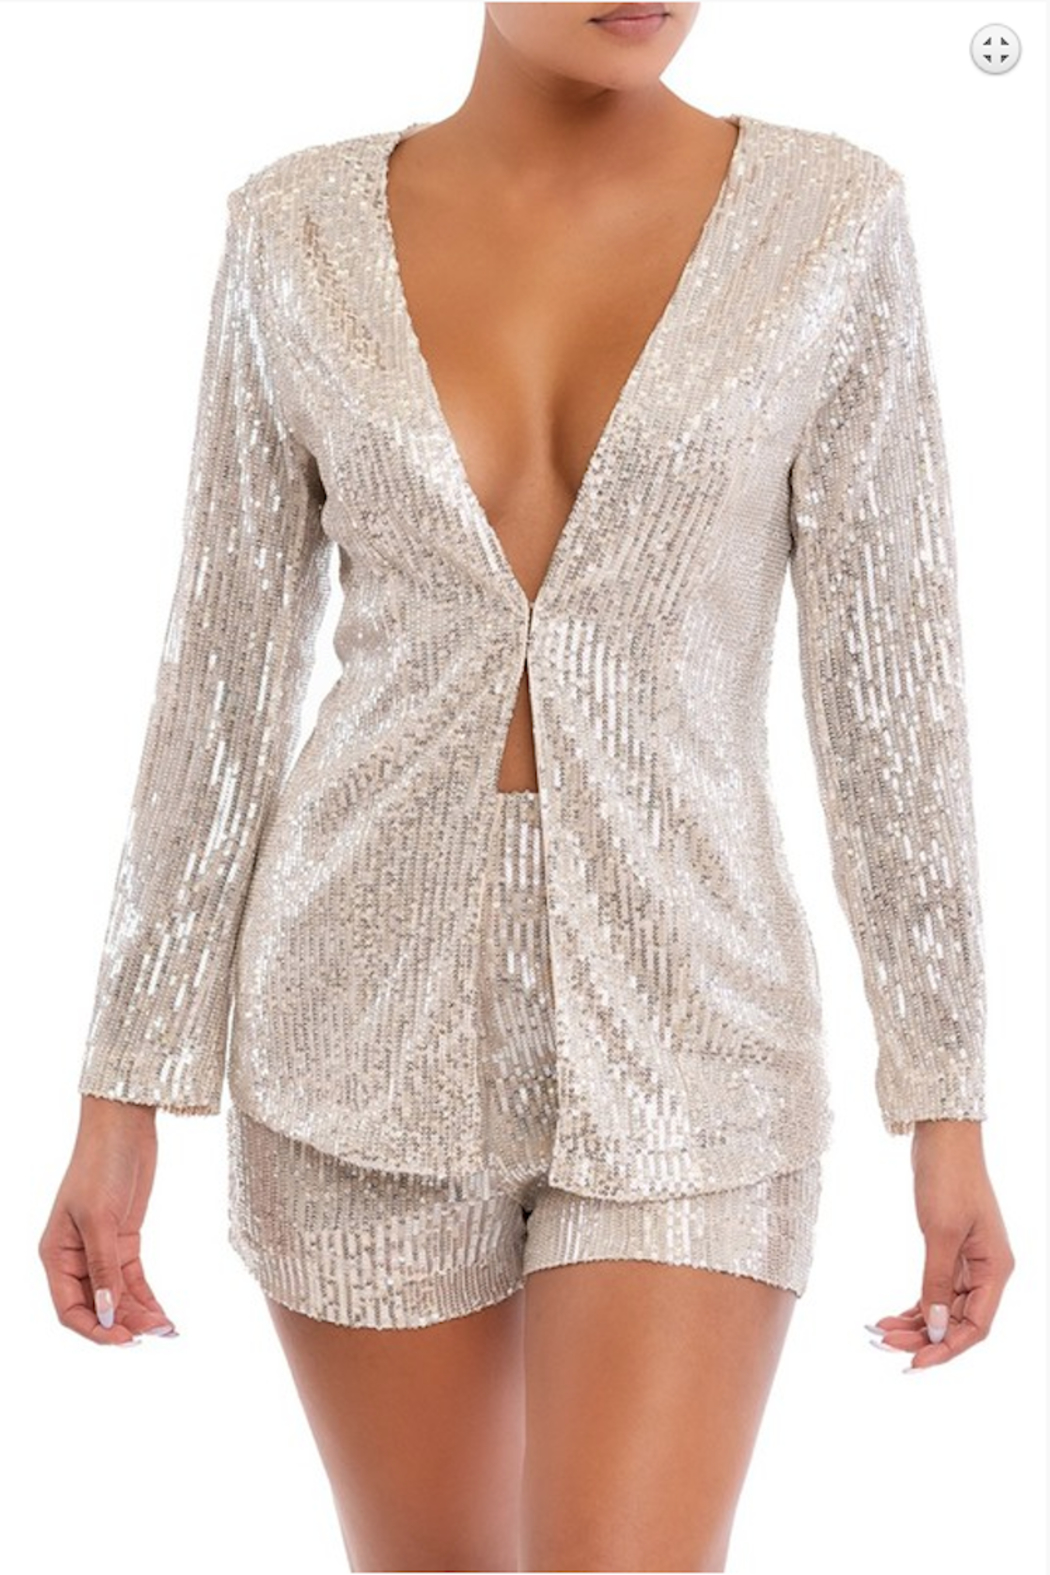 luxxel Sequin Short and Blazer Set - Front Cropped Image